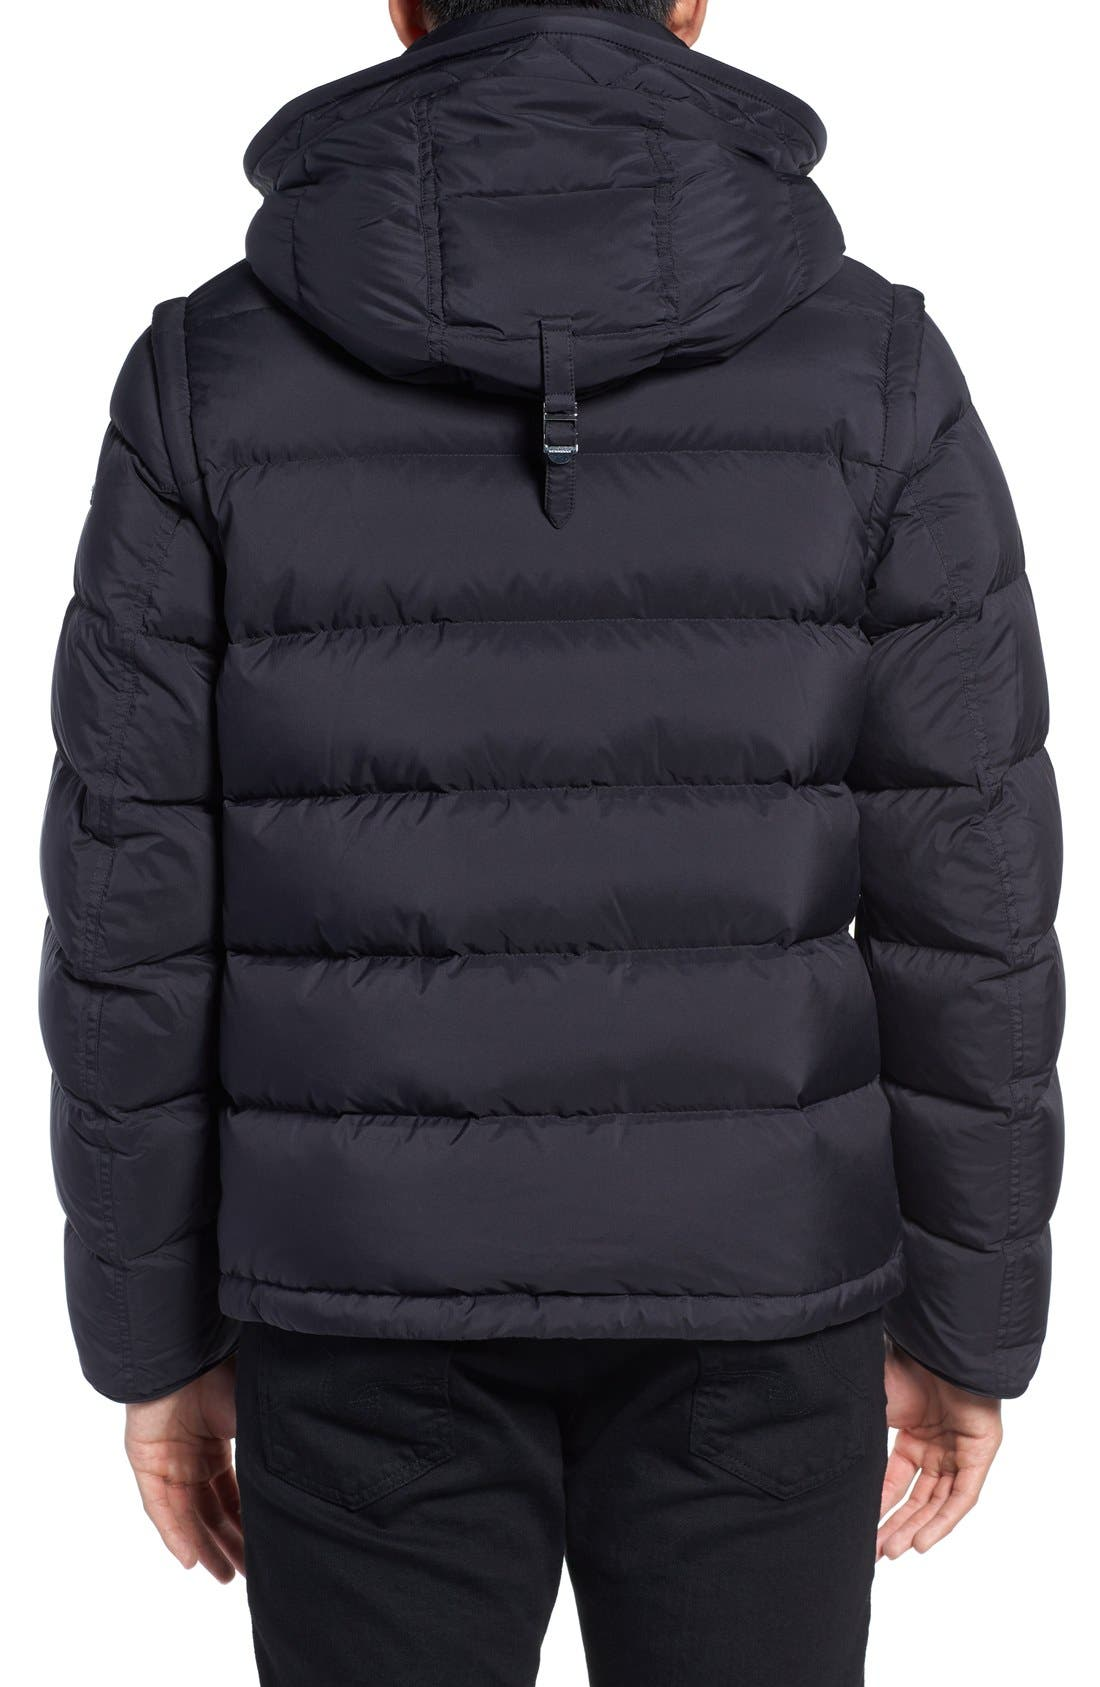 Convertible Quilted Jacket,                             Alternate thumbnail 2, color,                             Black